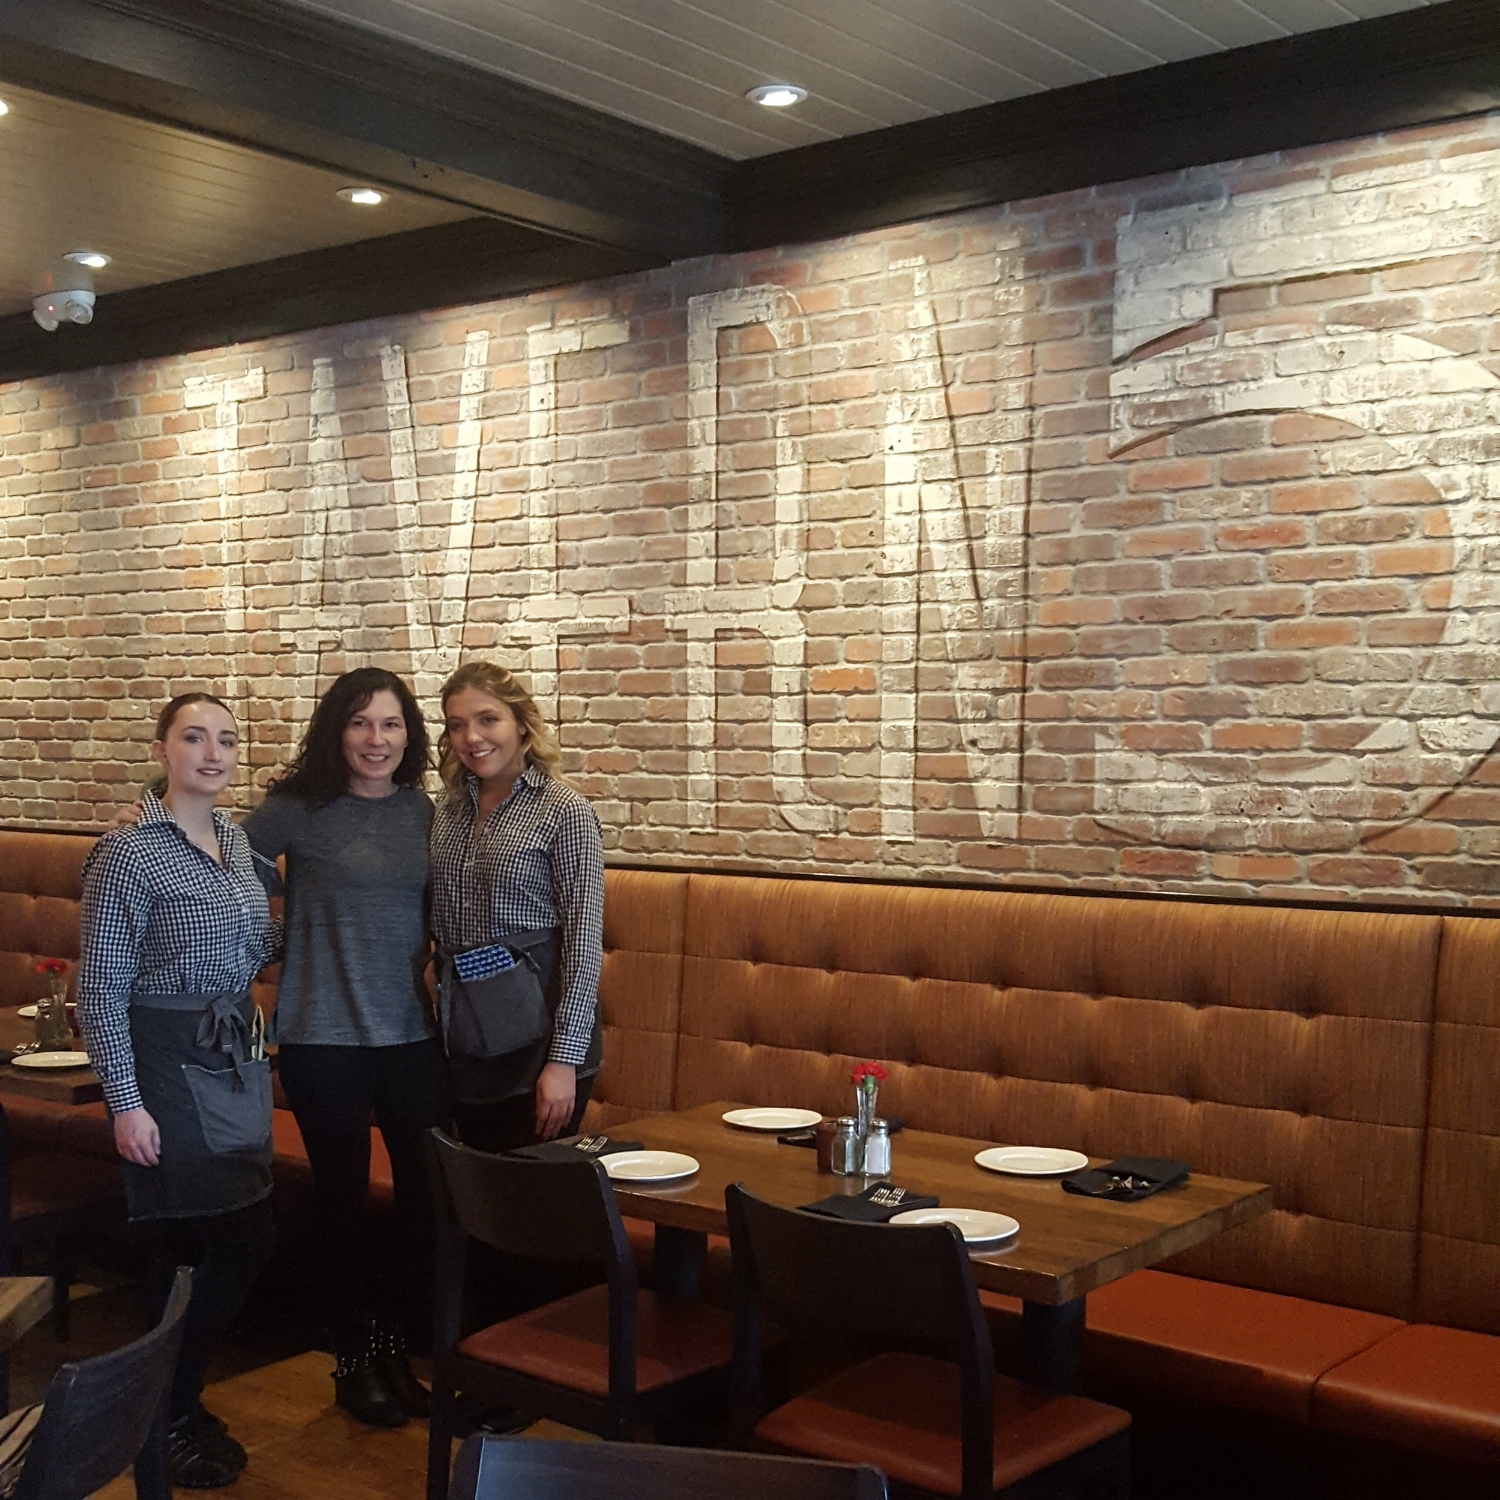 You will always find a welcoming staff at Tavern 5. I consider Tori and Erblina my Tavern 5 daughters. Brunch begins at 11 a.m. and we were the first to arrive. We had so much more to accomplish before Brielle, Candace, and Aubrey headed back home.